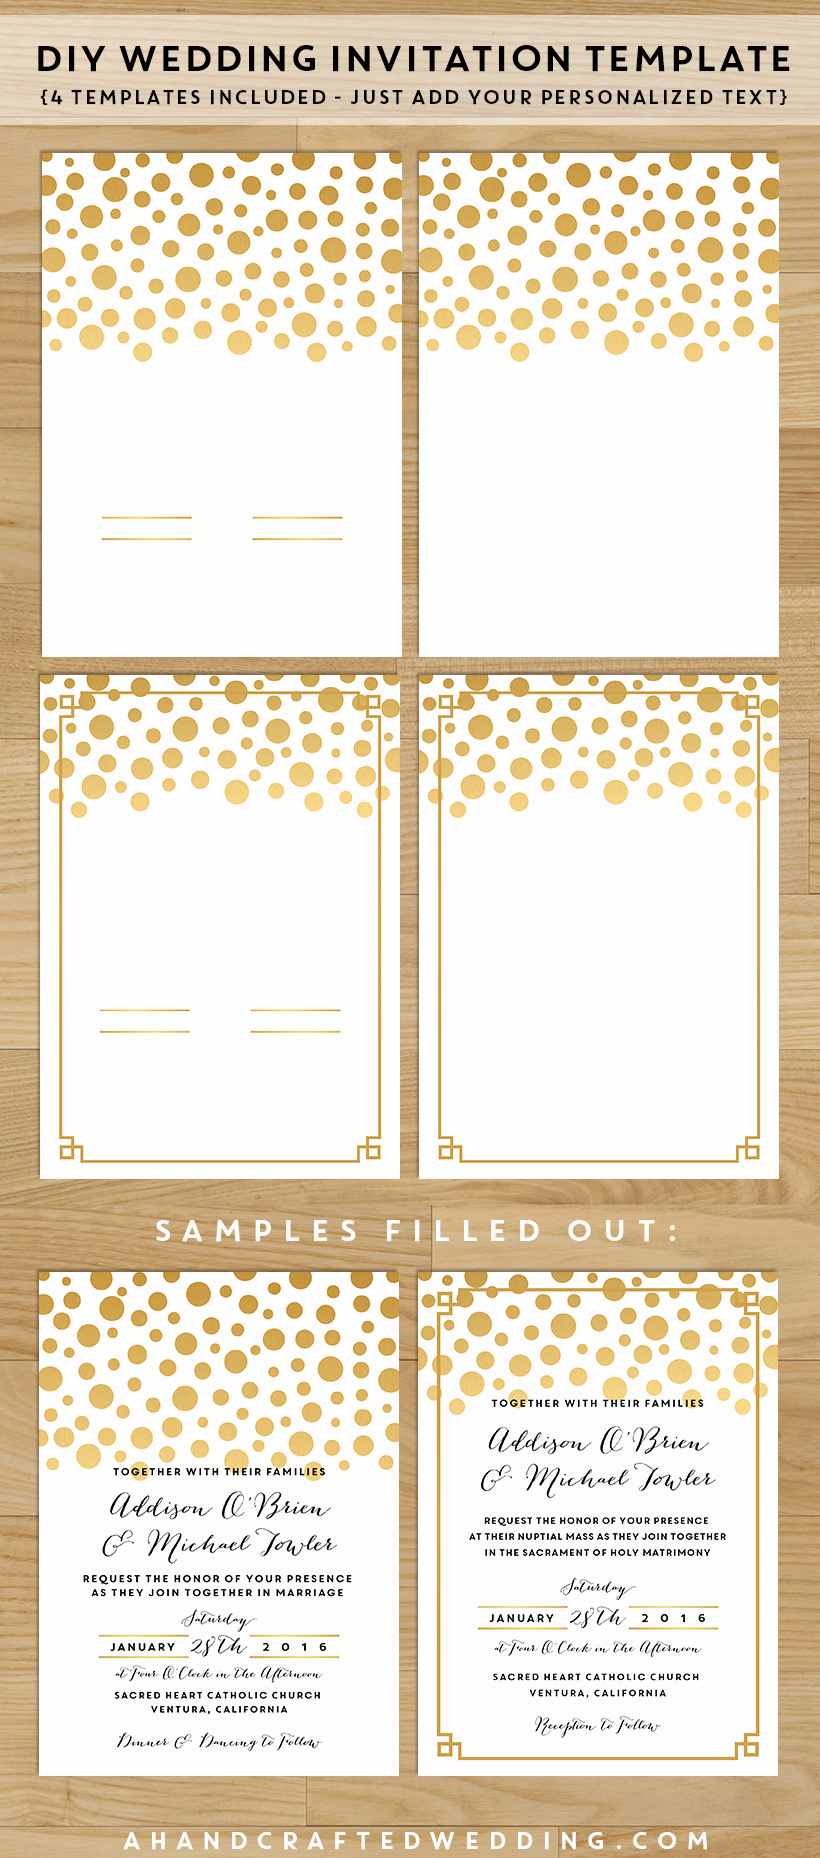 7 Best Of Diy Printable Wedding Invitation